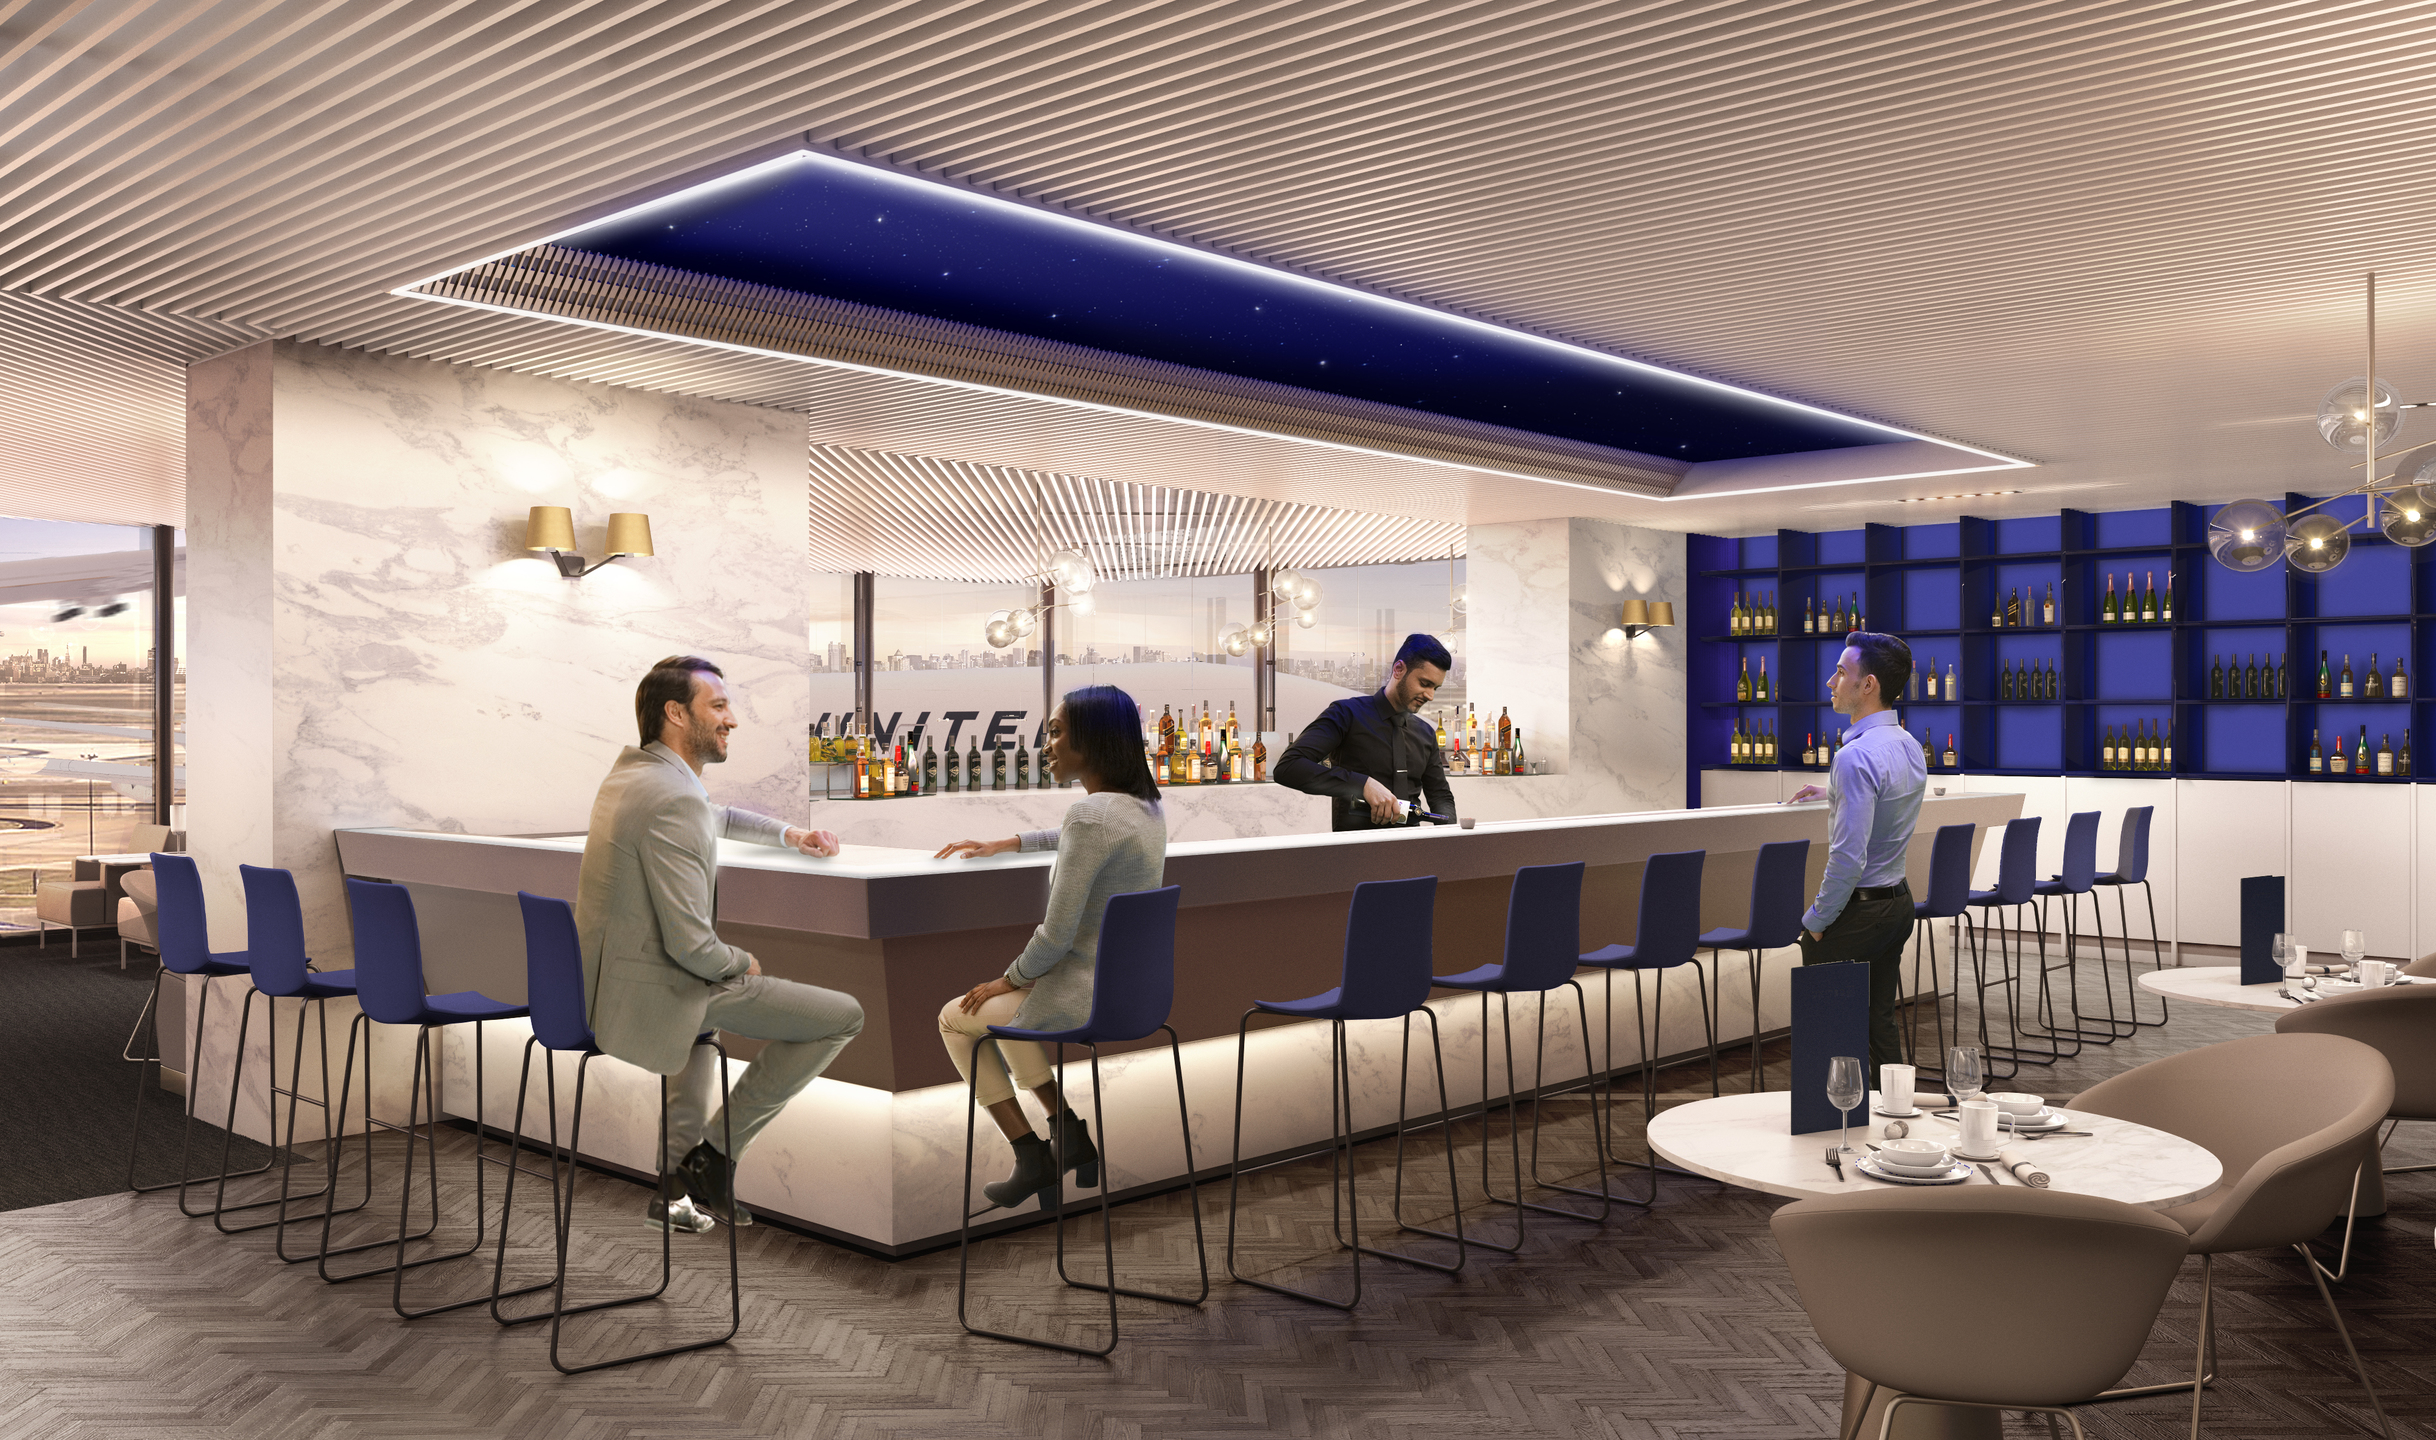 United Airlines Business Class lounge visitors get premium cocktails at the Polaris Lounge bar.